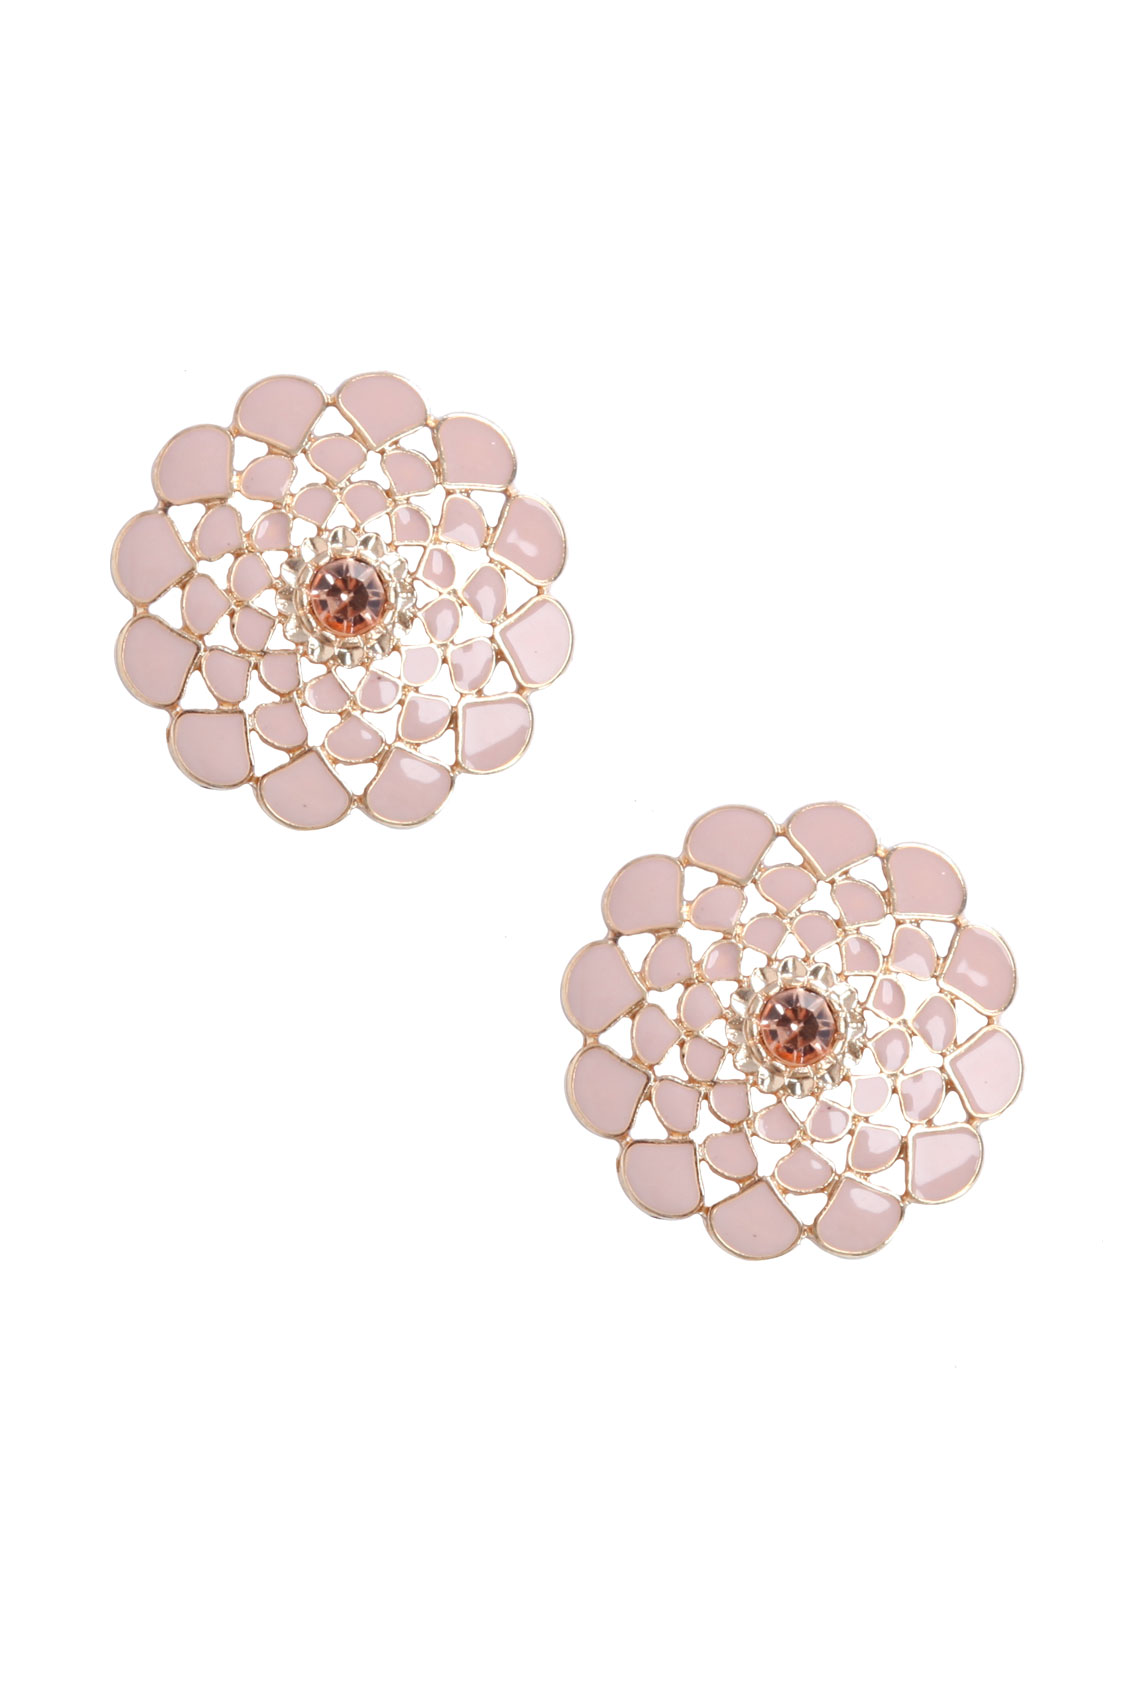 large in flower new pair jewelry from exaggerated crystals for style item seaside fashionable earrings stud resort women flowers white